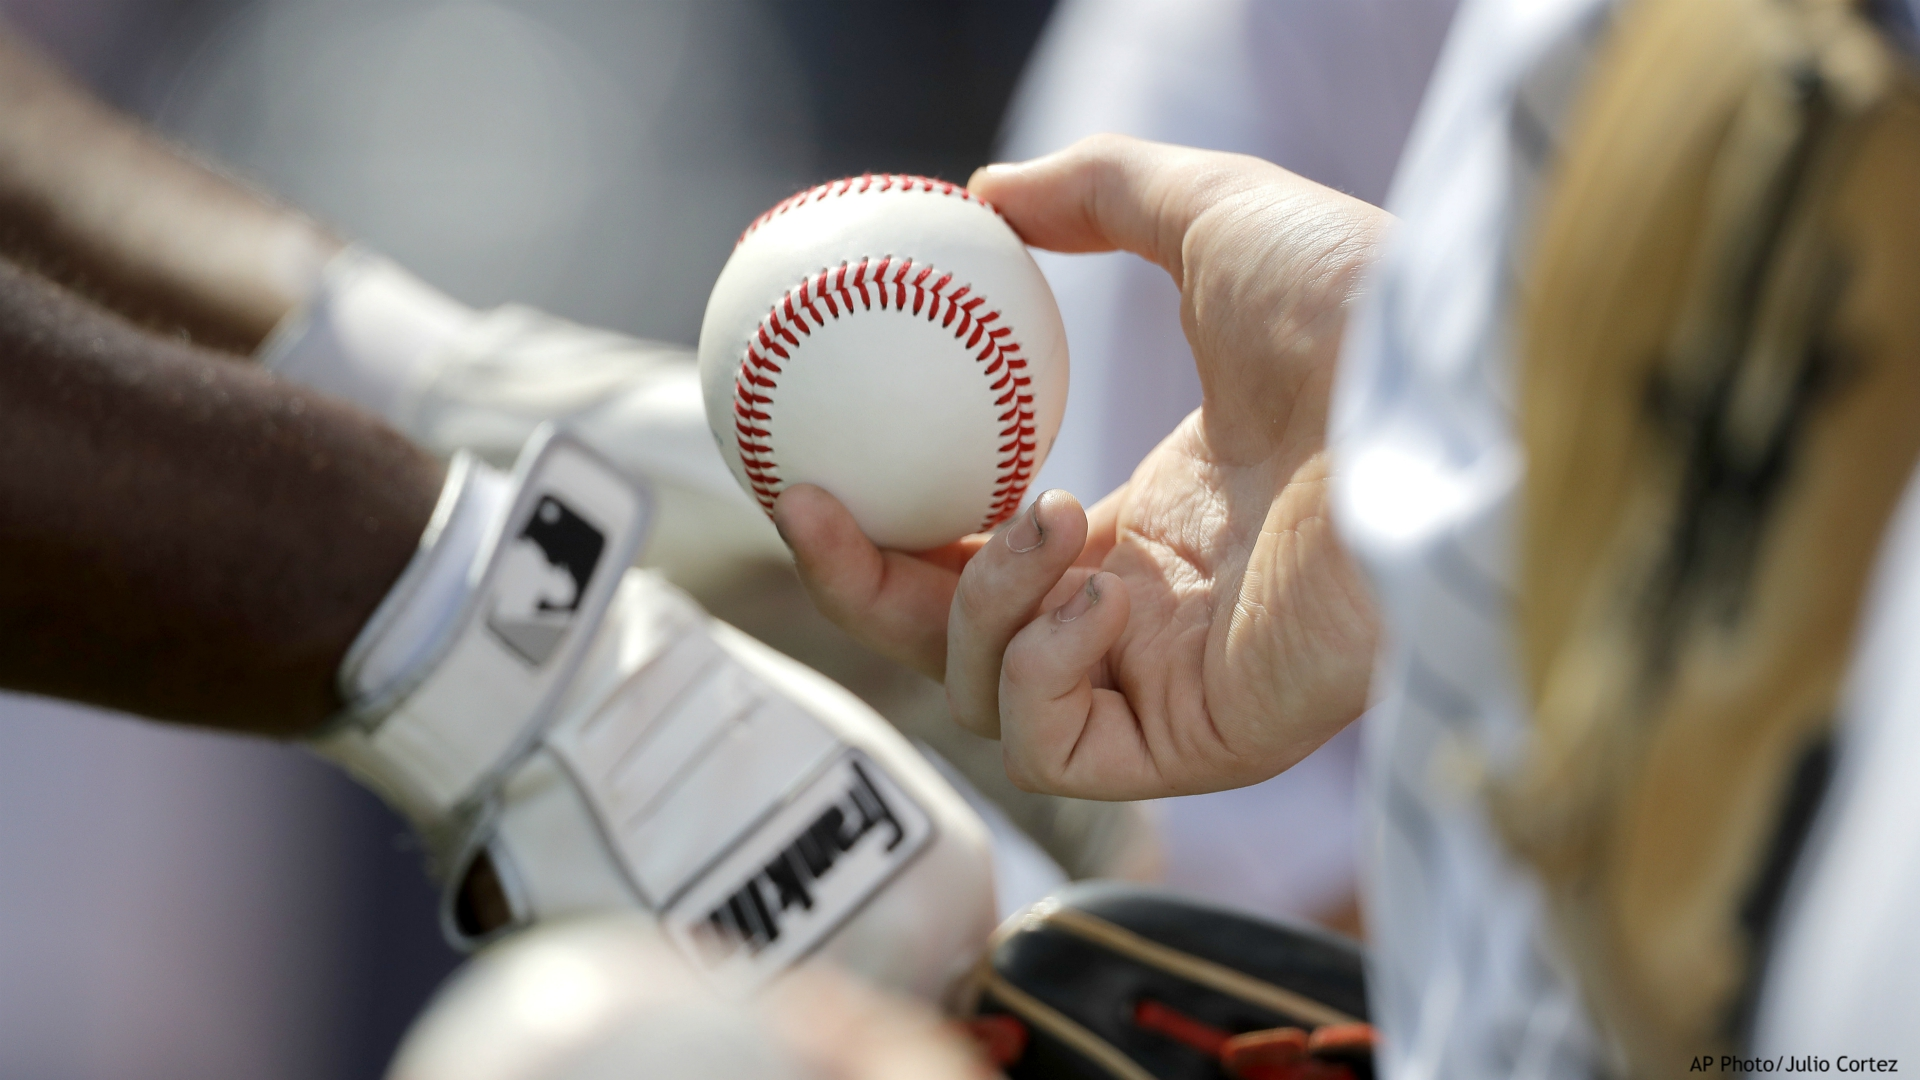 A fan holds a baseball while waiting for an autograph fro New York Yankees infielder Chris Gittens prior to a spring training baseball game against the Washington Nationals, Thursday, March 12, 2020, in West Palm Beach, Fla. (AP Photo/Julio Cortez)